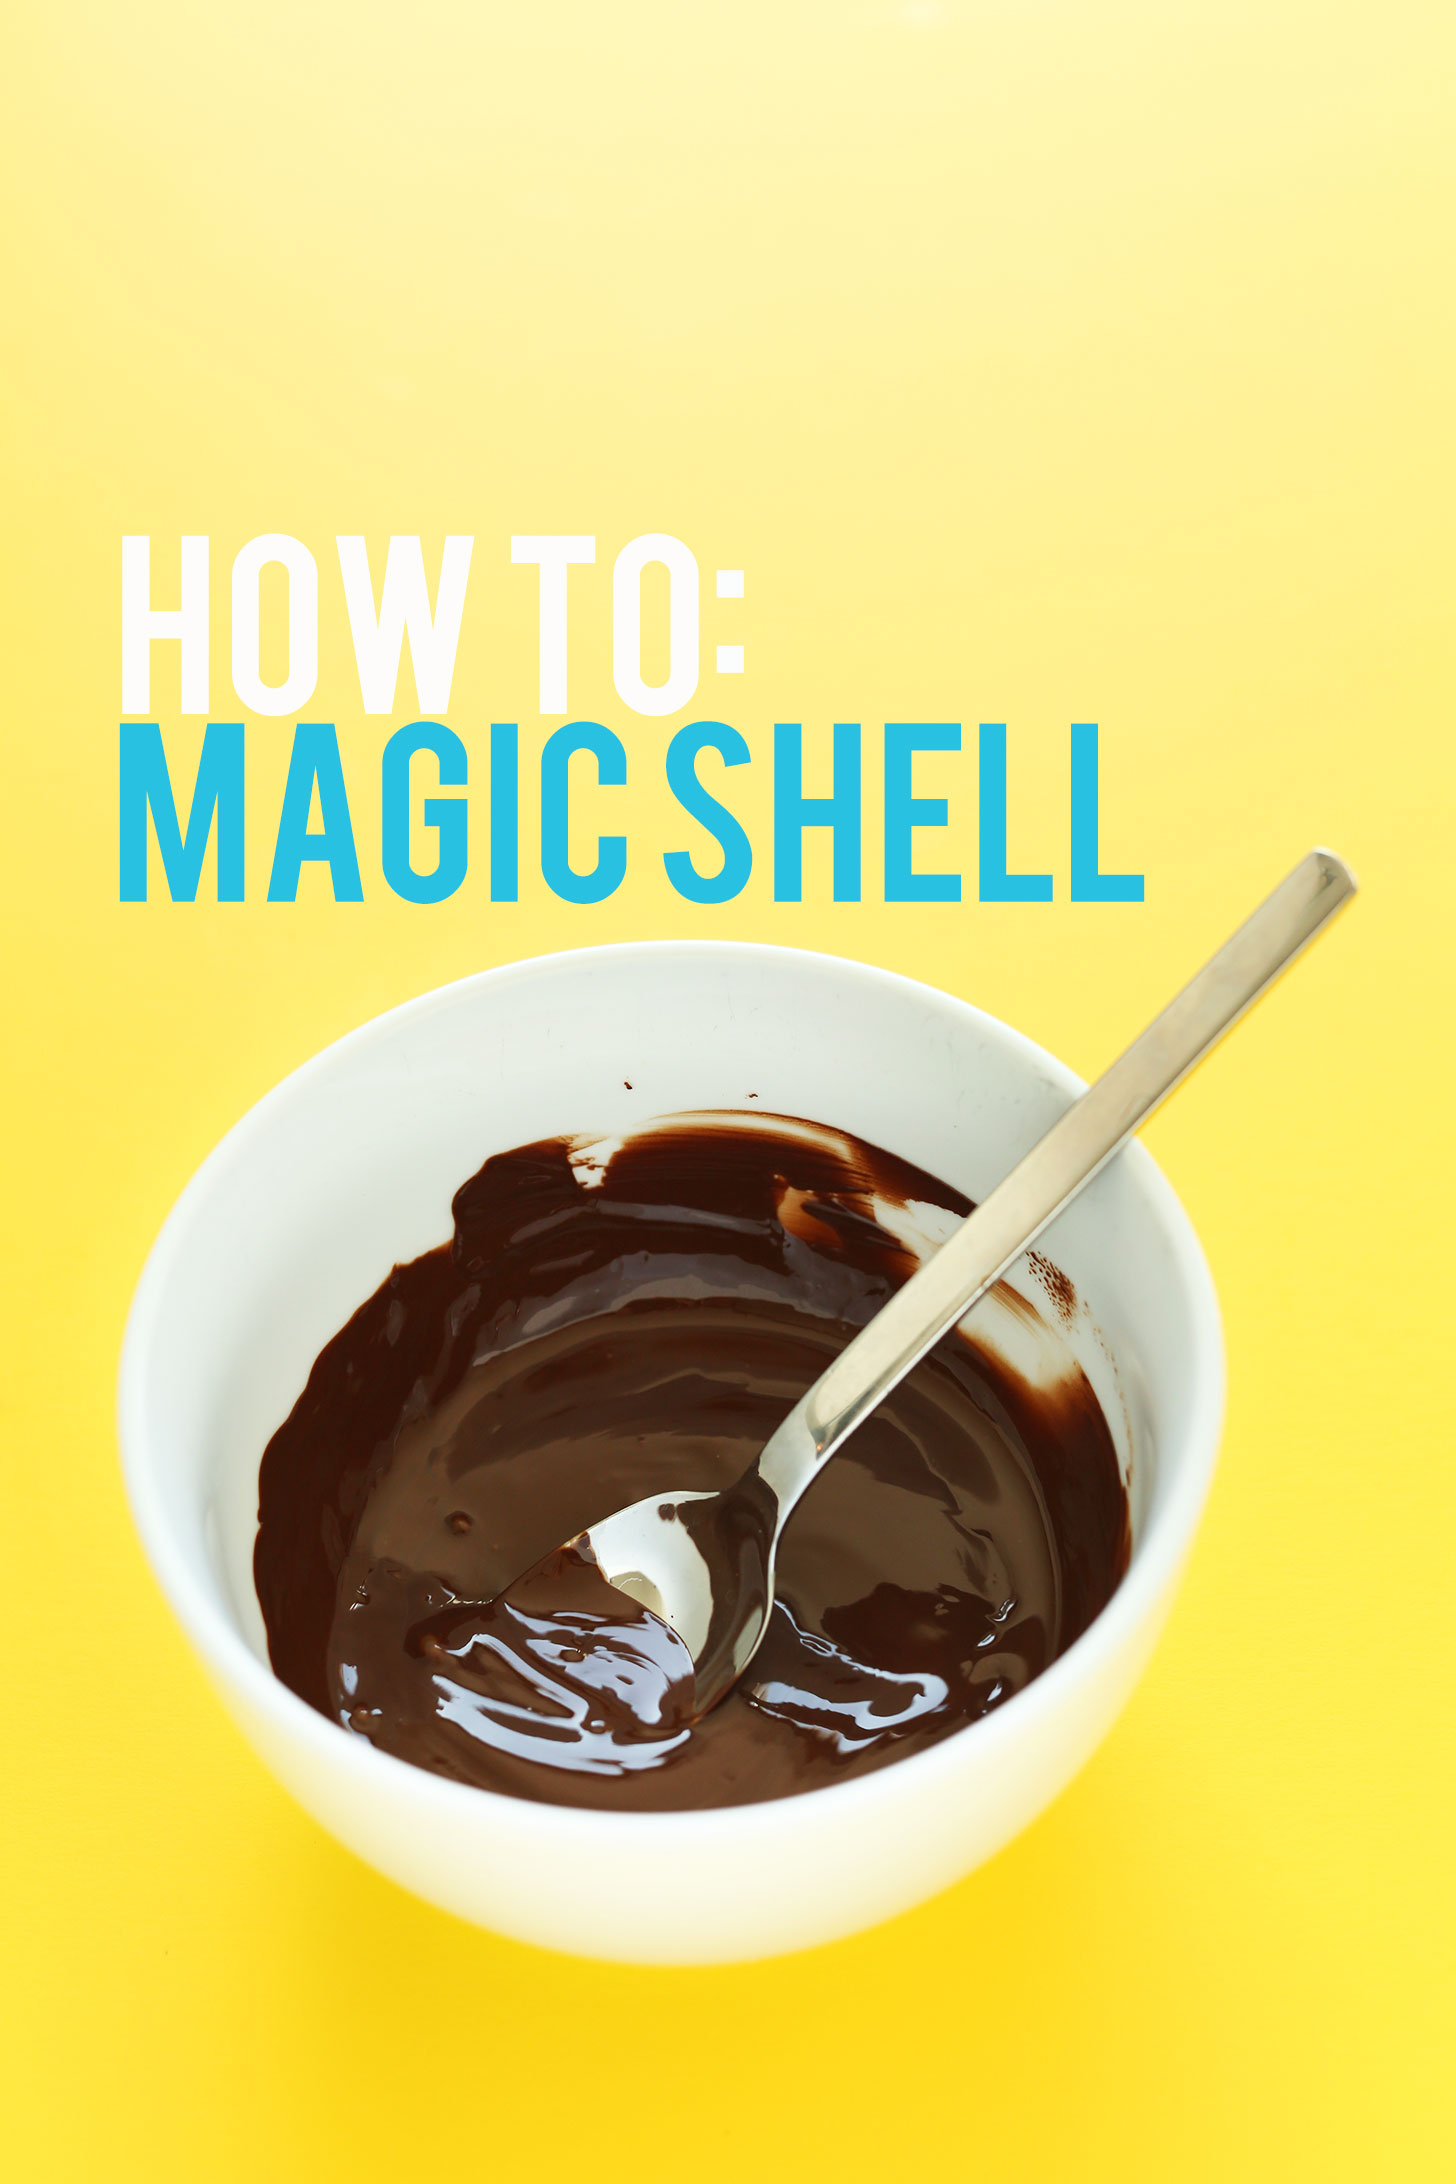 Stirring a bowl of melted chocolate for our homemade magic shell recipe